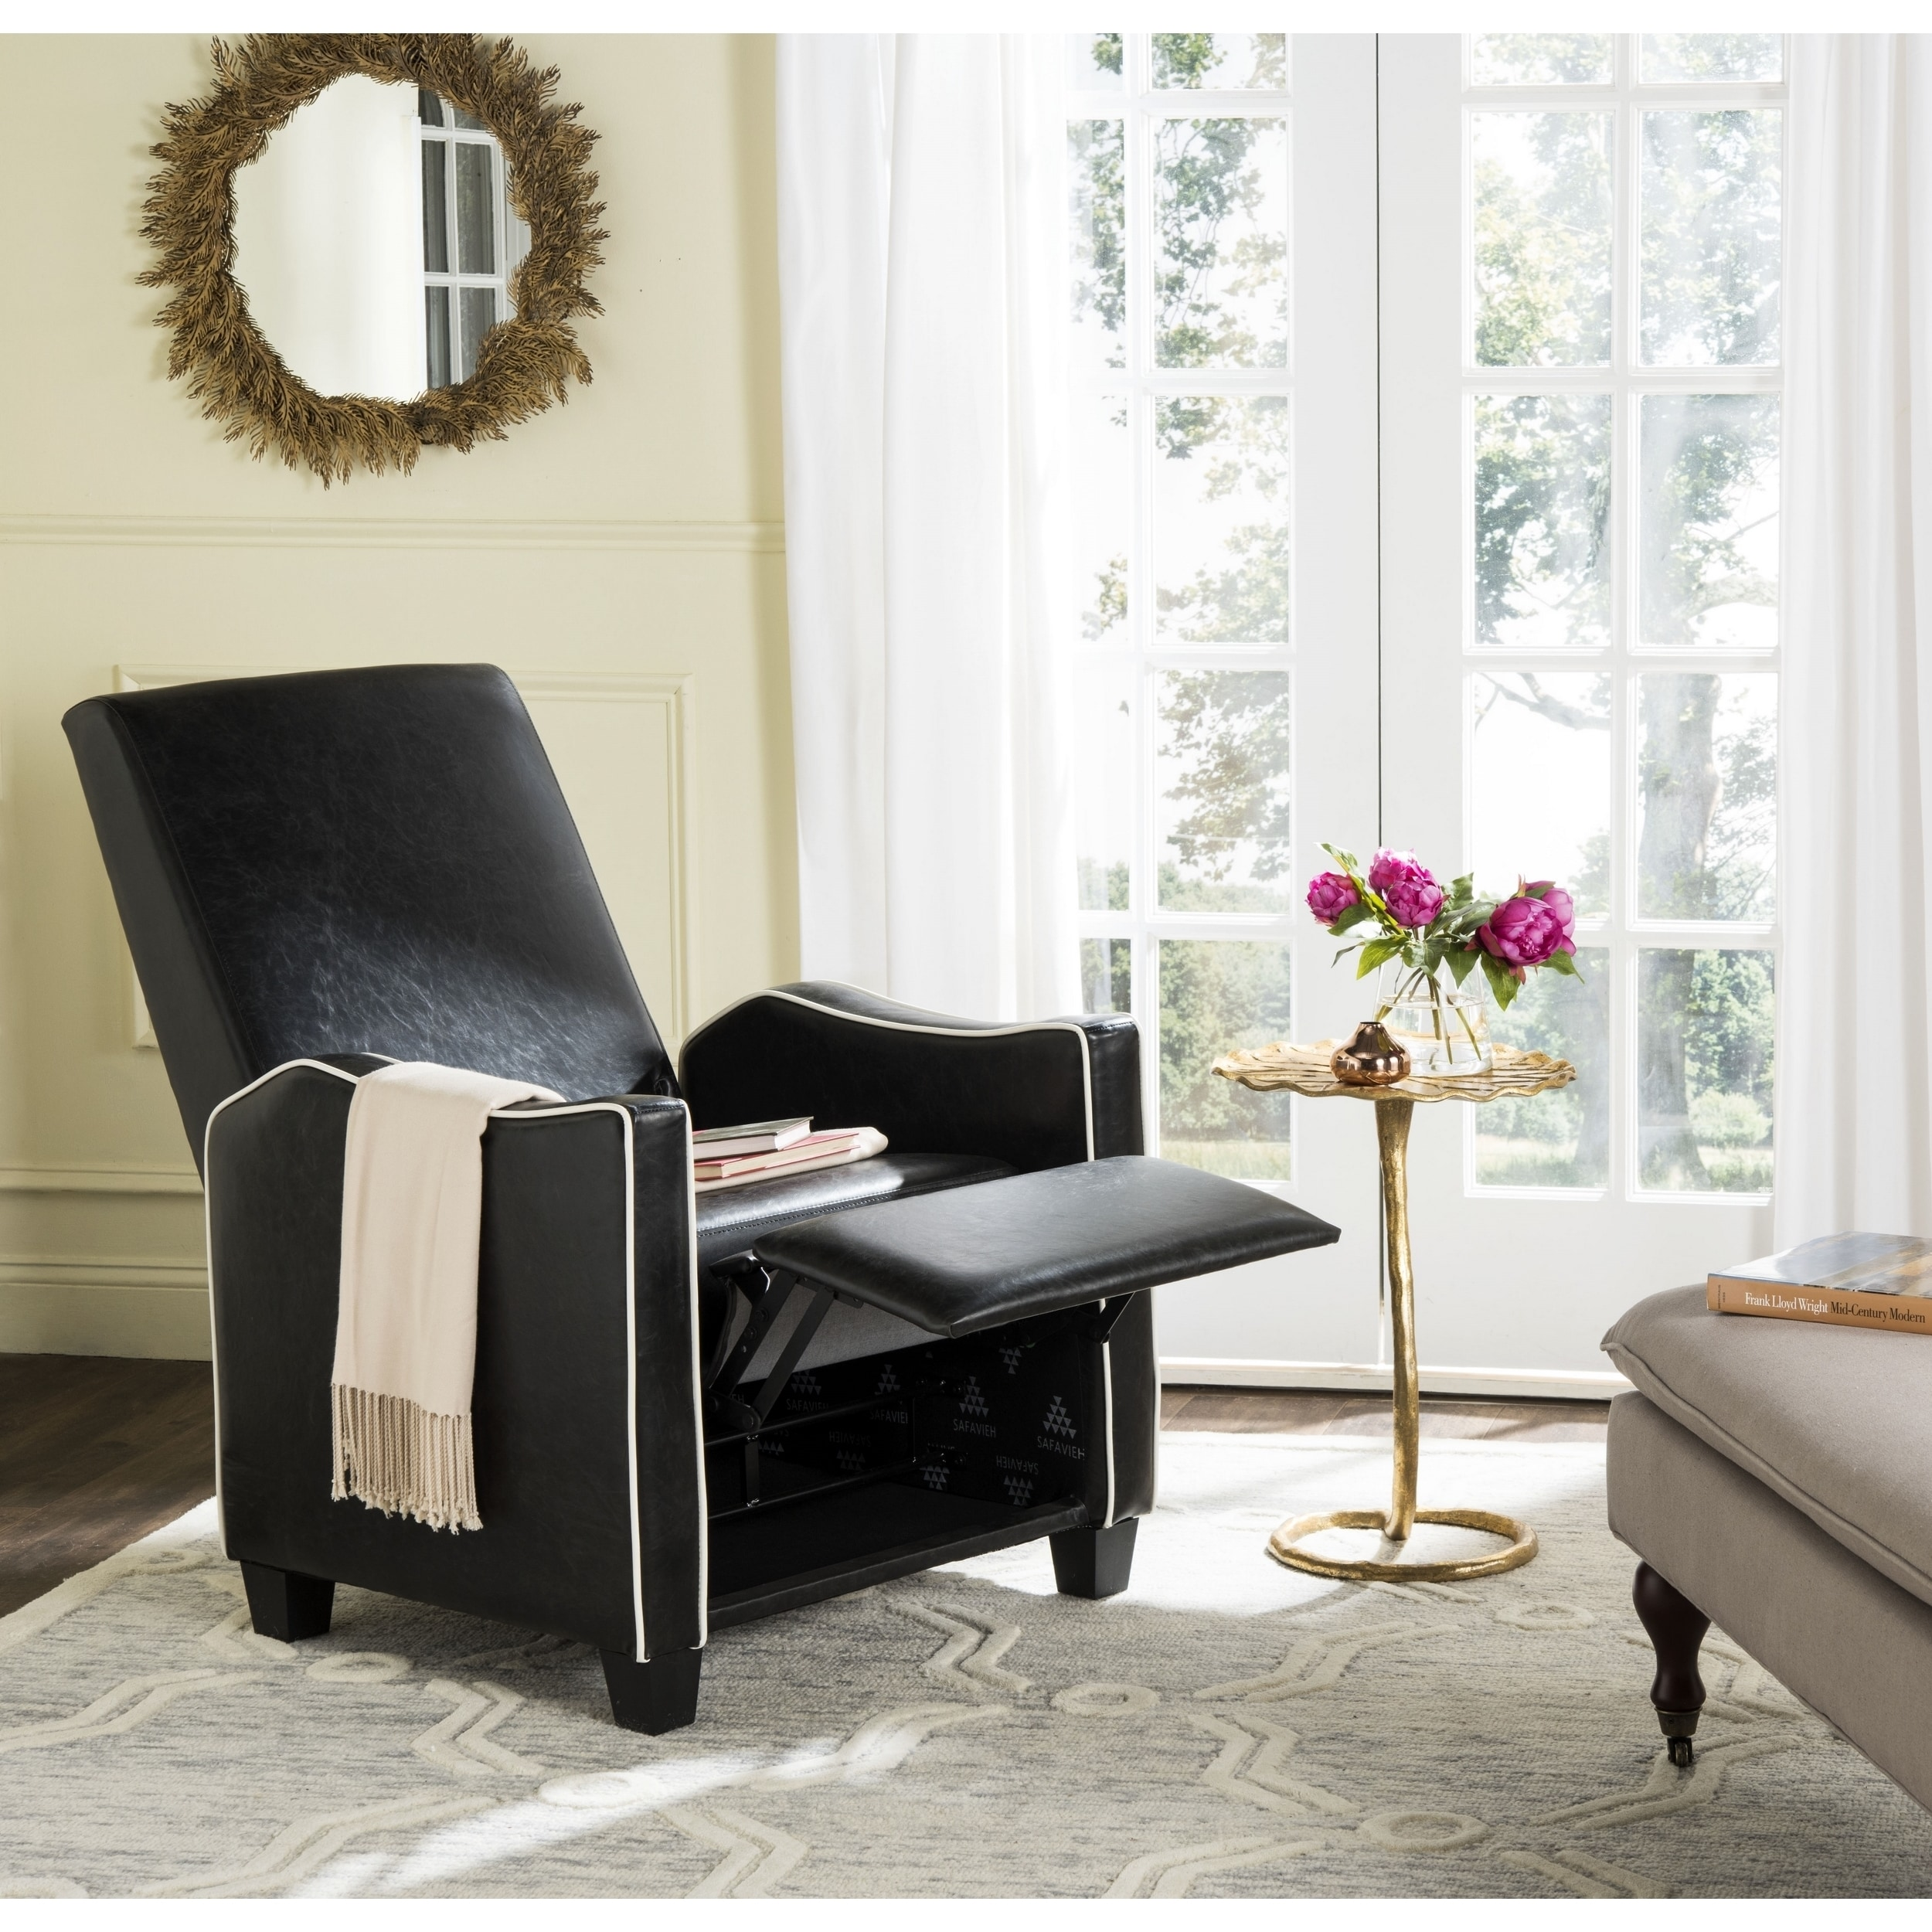 Pleasant Safavieh Holden Black White Recliner Chair Pabps2019 Chair Design Images Pabps2019Com